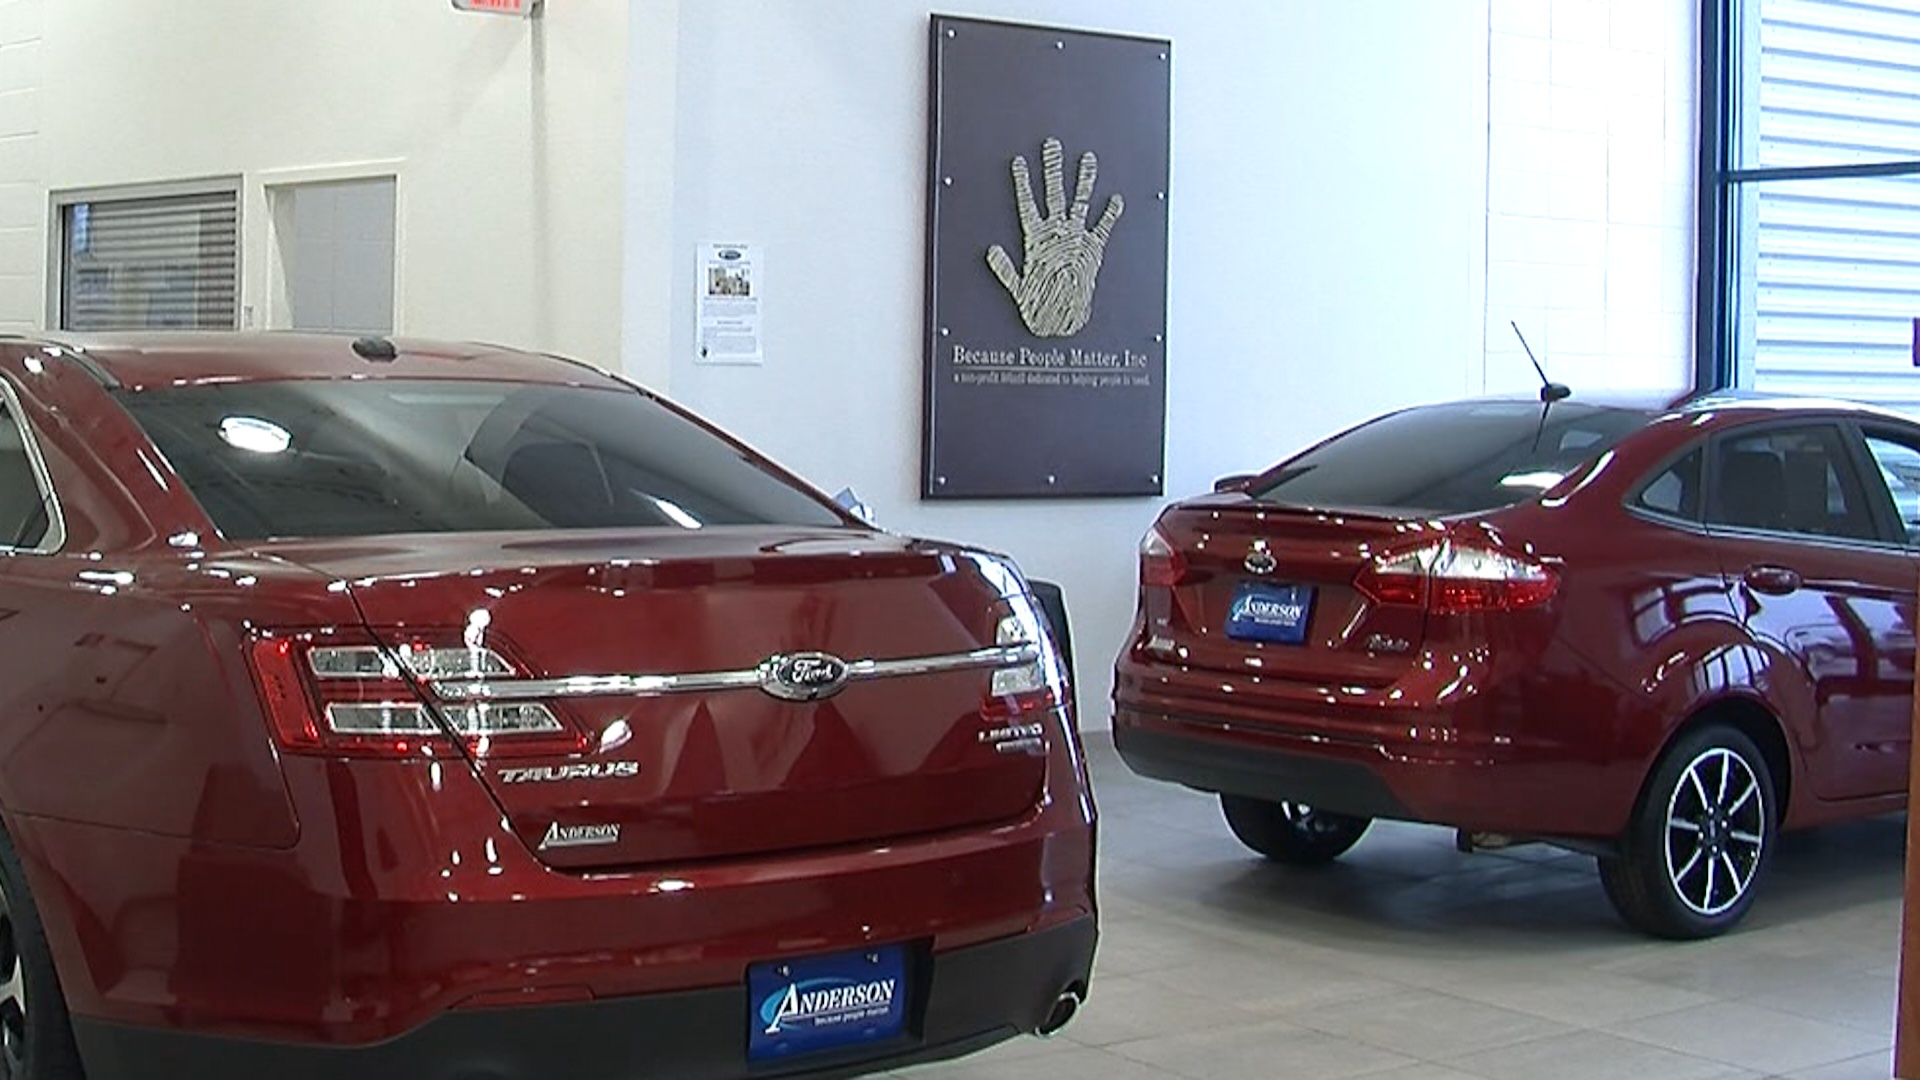 anderson ford 39 s because people matter in need of car donations. Cars Review. Best American Auto & Cars Review